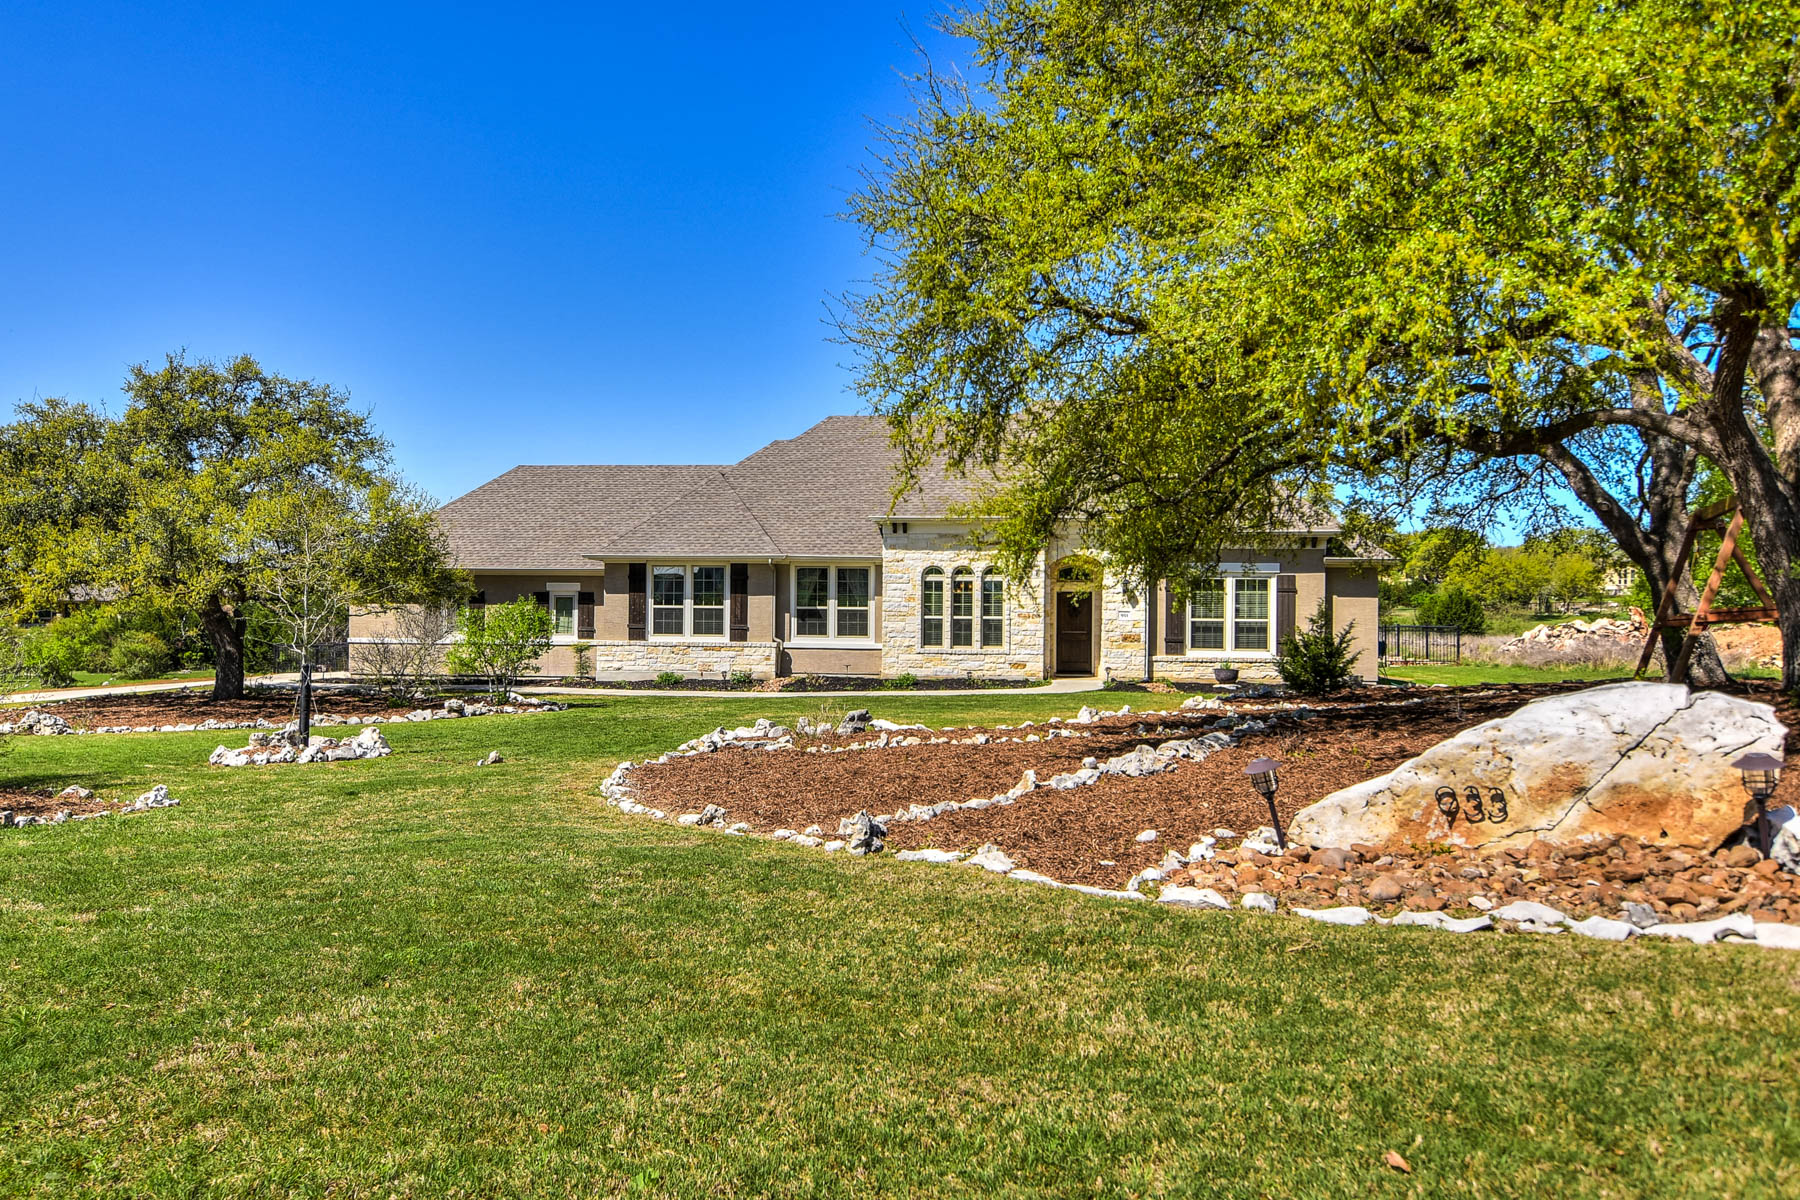 Single Family Home for Sale at Gorgeous Home in Prestigious Vintage Oaks 933 Cross Oak New Braunfels, Texas 78132 United States